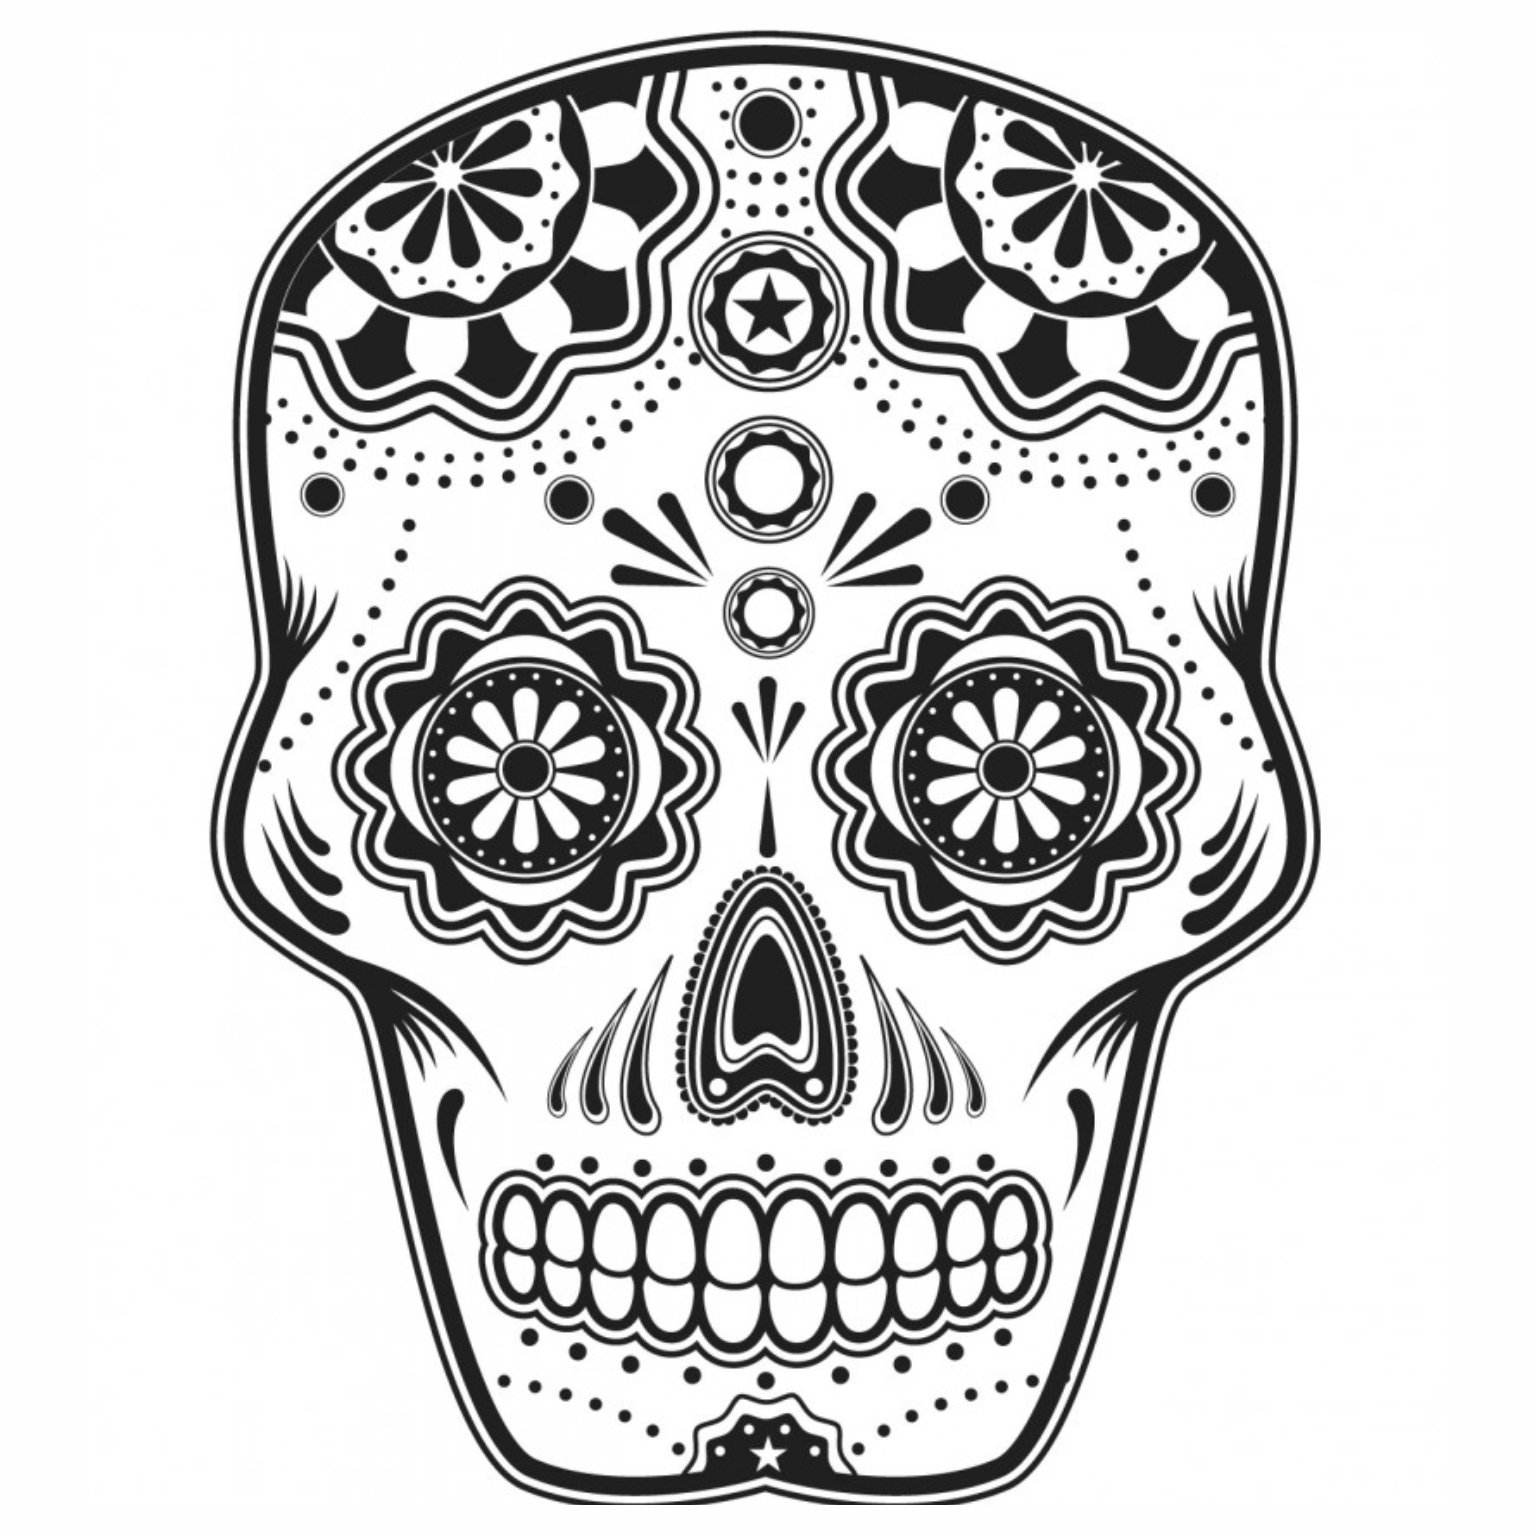 day of the dead skull mask template - caveiras mexicanas para colorir imagens png